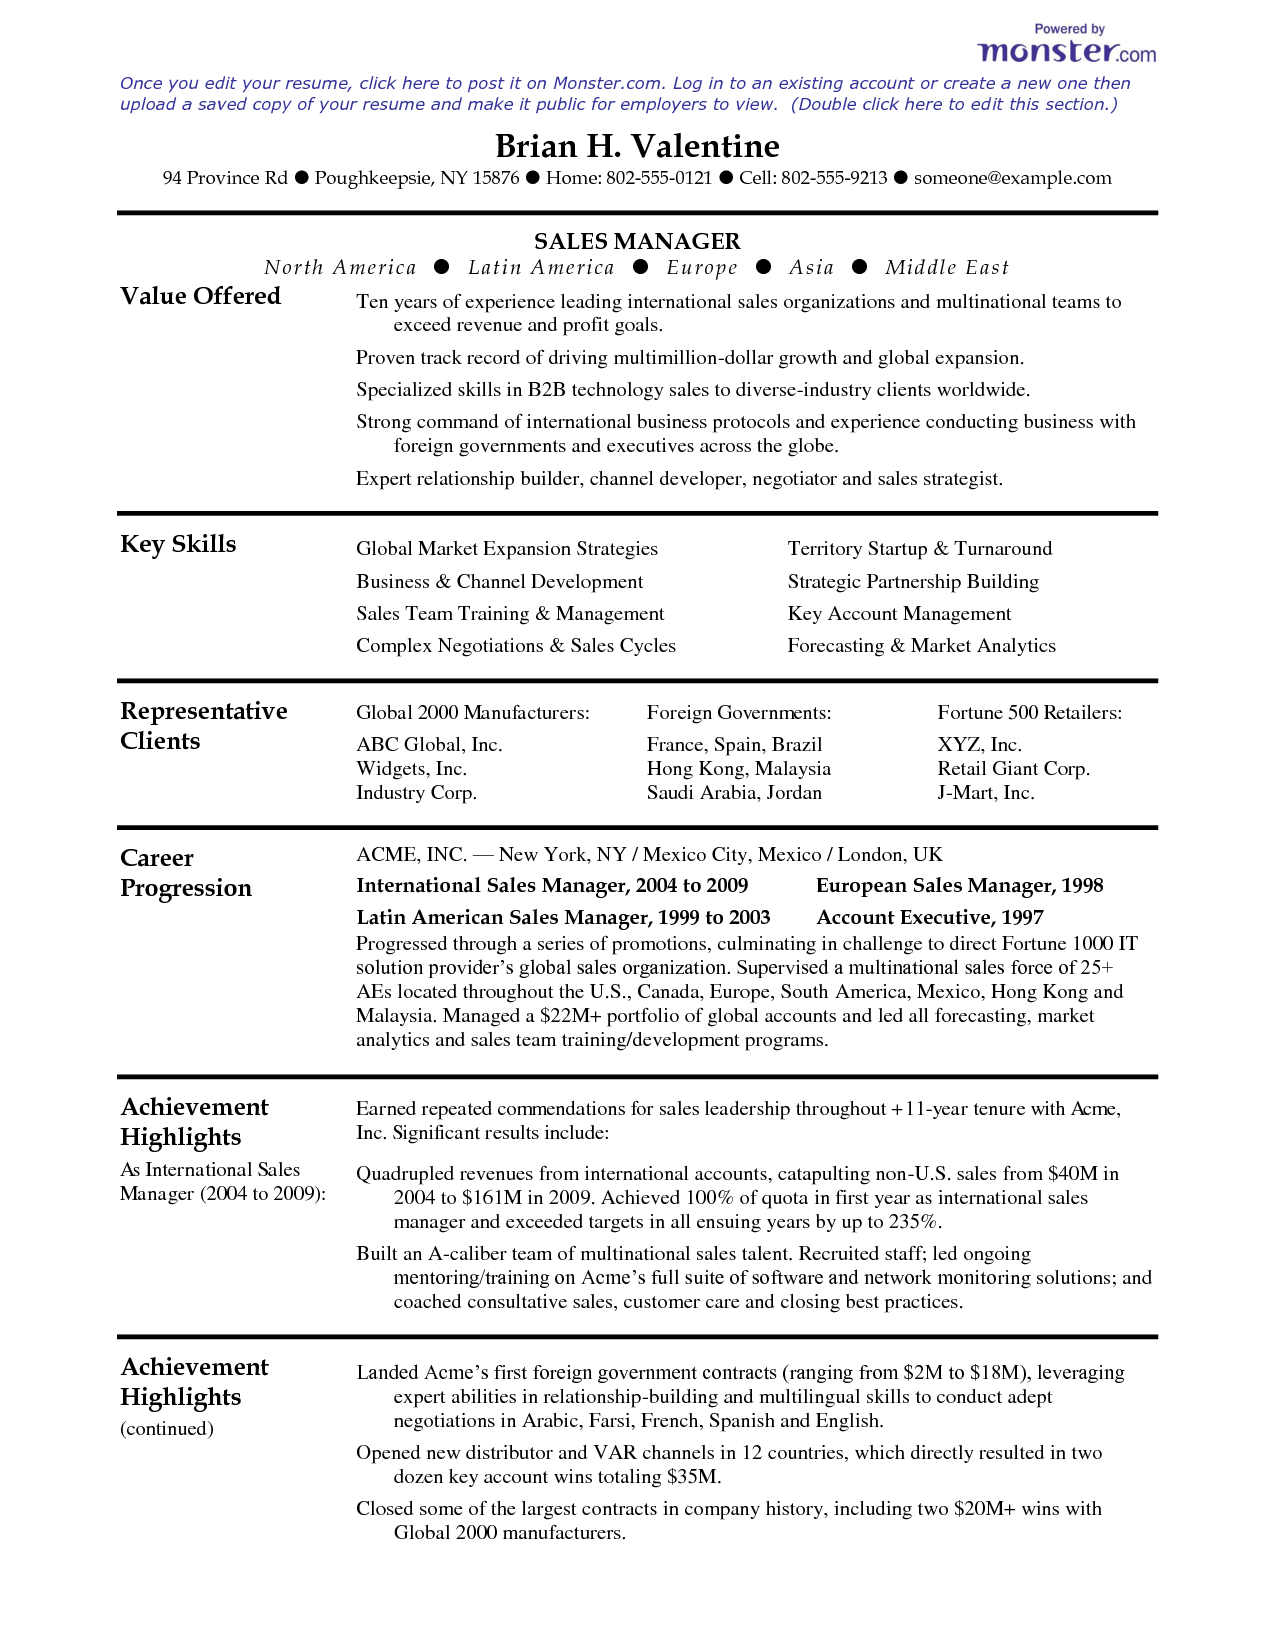 templates for sales manager resumes | SALES MANAGER - Your Resume ...